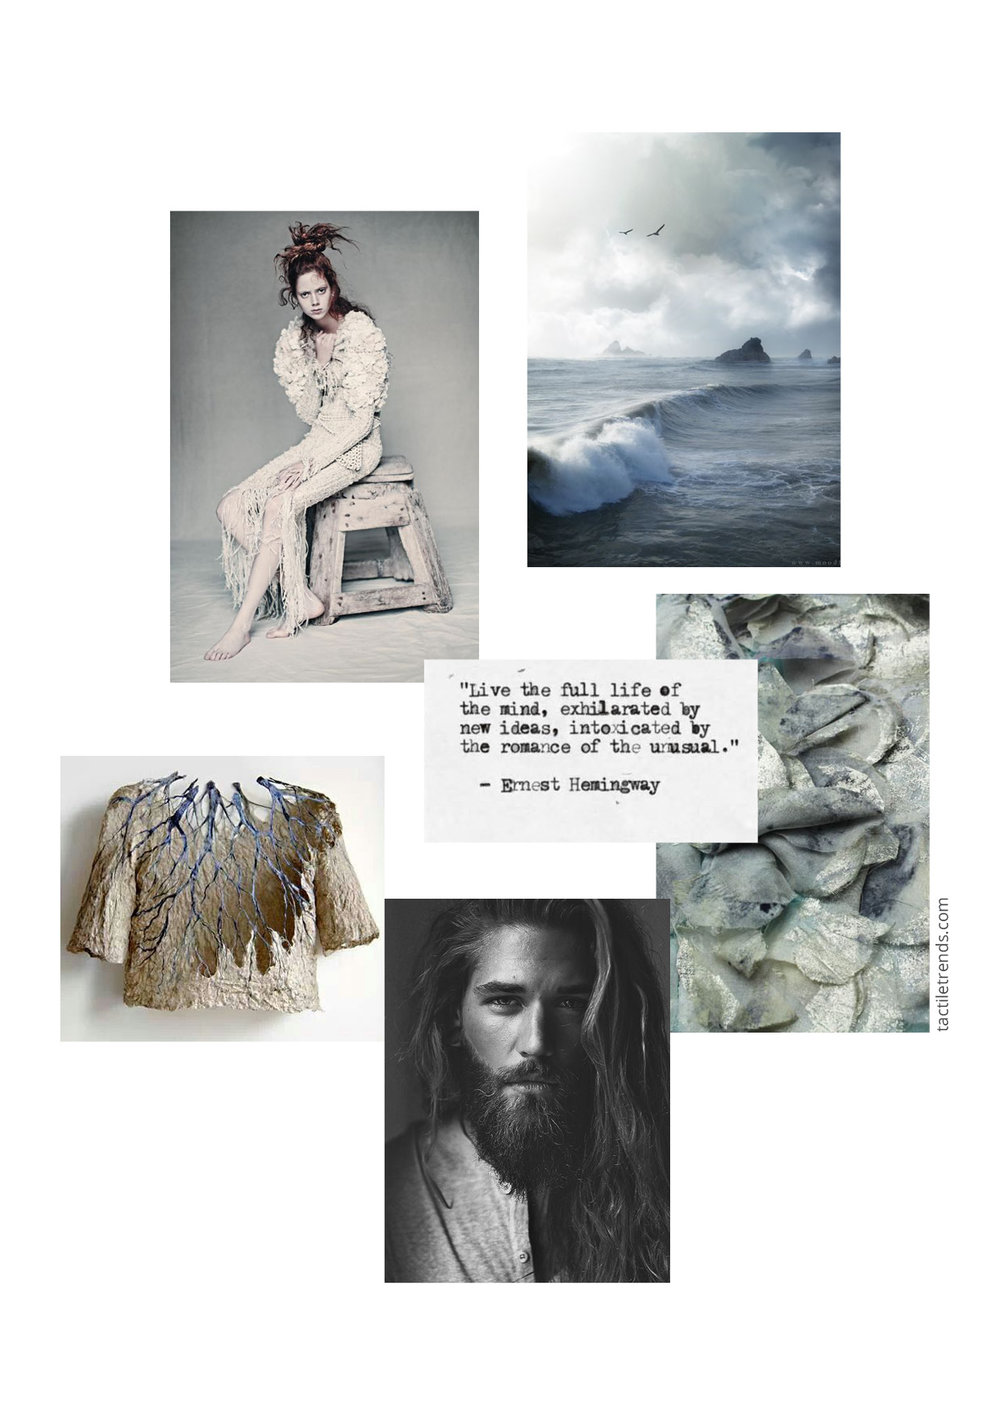 Trend Story AW18/19 - Mariners Muse  Images: Paolo Roverski  for Vogue Italia |  Mood Flow  |  Reija Jokinen  | The Old Man and the Sea by Ernest Hemingway |  Sarah Walton  | Ben Dahlhaus by  Esra Sam